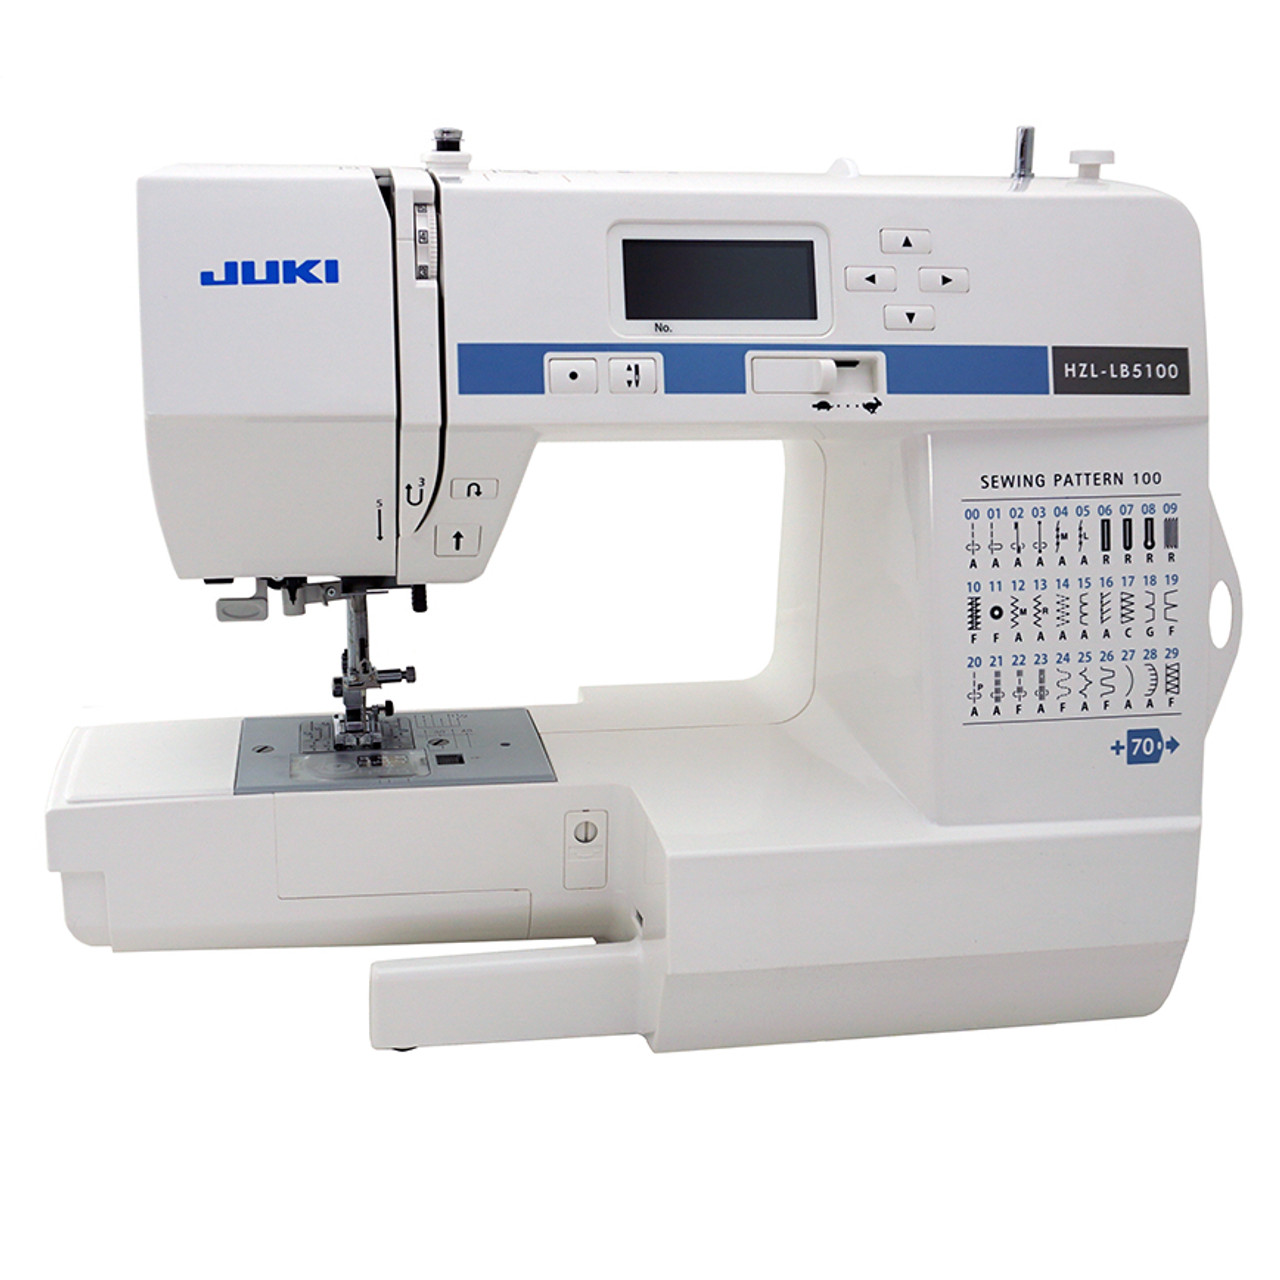 Juki HZLLB40 Computerized Sewing Machine 4040 FREE SHIPPING Stunning Computerized Sewing Machine